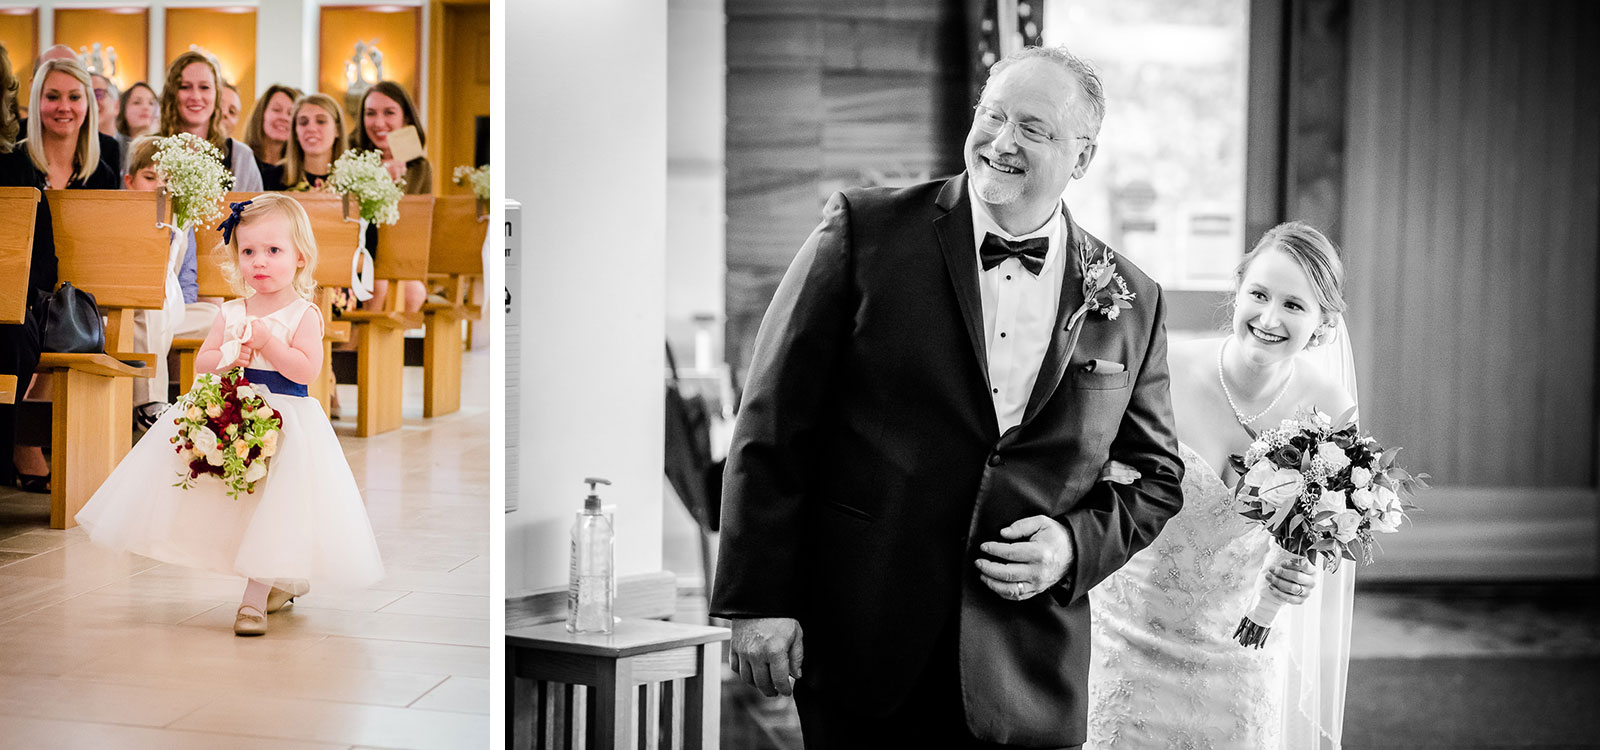 Eric_and_Christy_Photography_Blog_Wedding_Erica_Mike-9-10